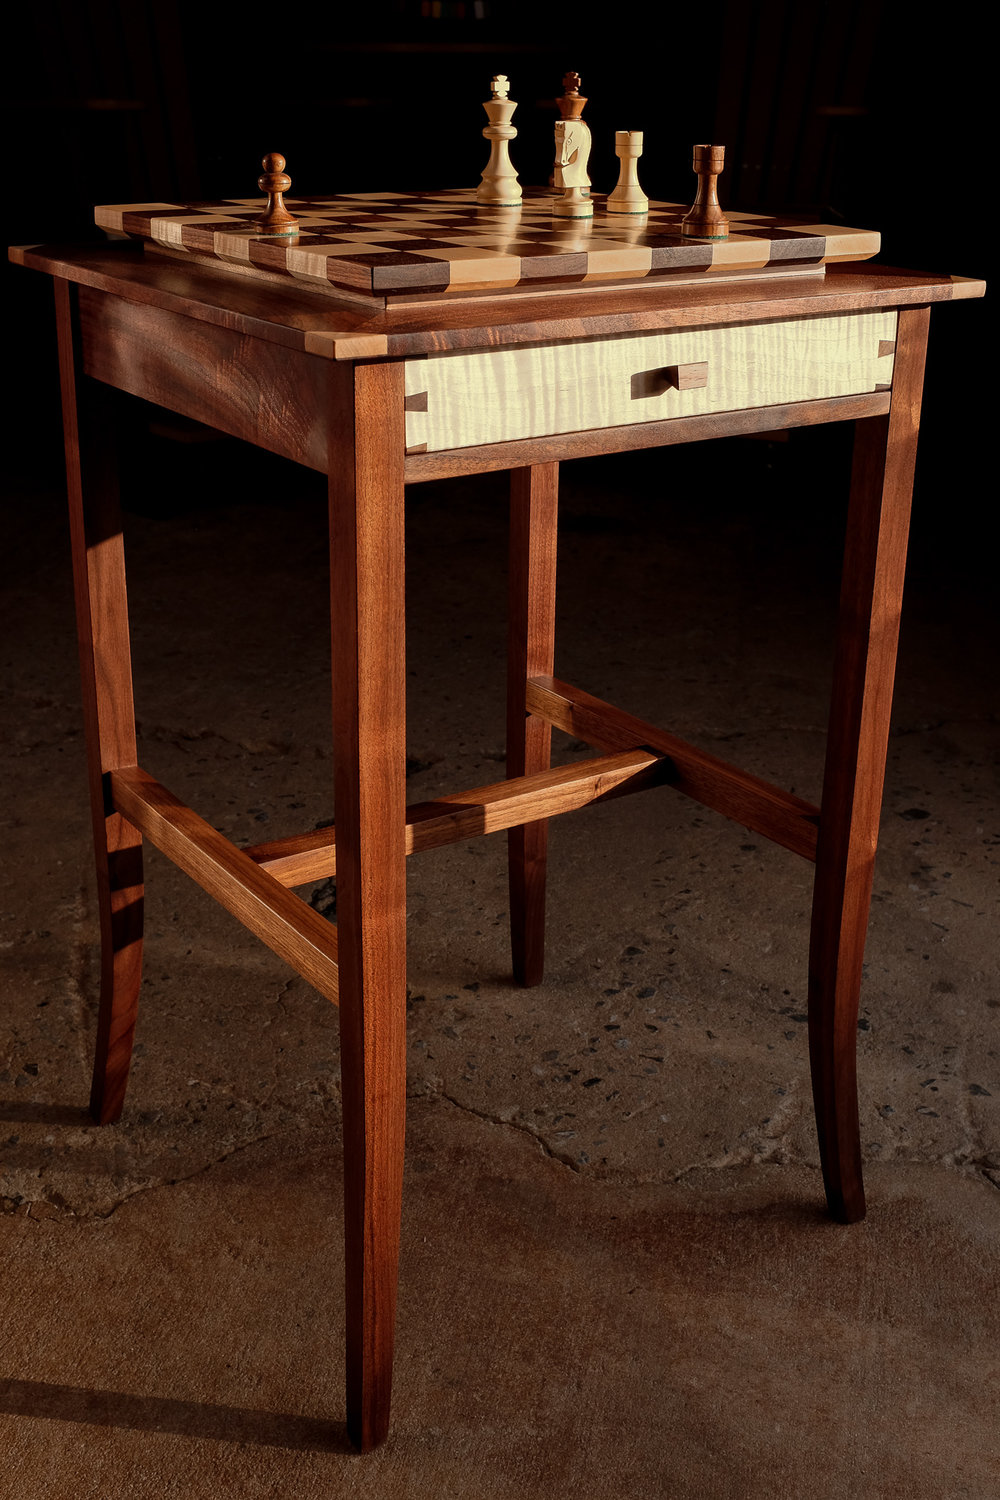 A chess table in walnut and curly maple. The playing surface is solid wood with internal joinery between each square and is friction fit in a floated mitered frame so it can be removed and used on another surface if preferred. The recessed walnut frame makes a perfect place for captured pieces. One drawer of maple with walnut sides, and one drawer of walnut with maple sides organizes the traditional Russian style pieces. Maple splines and angular wooden pulls tie it all together and make for an elegant experience.